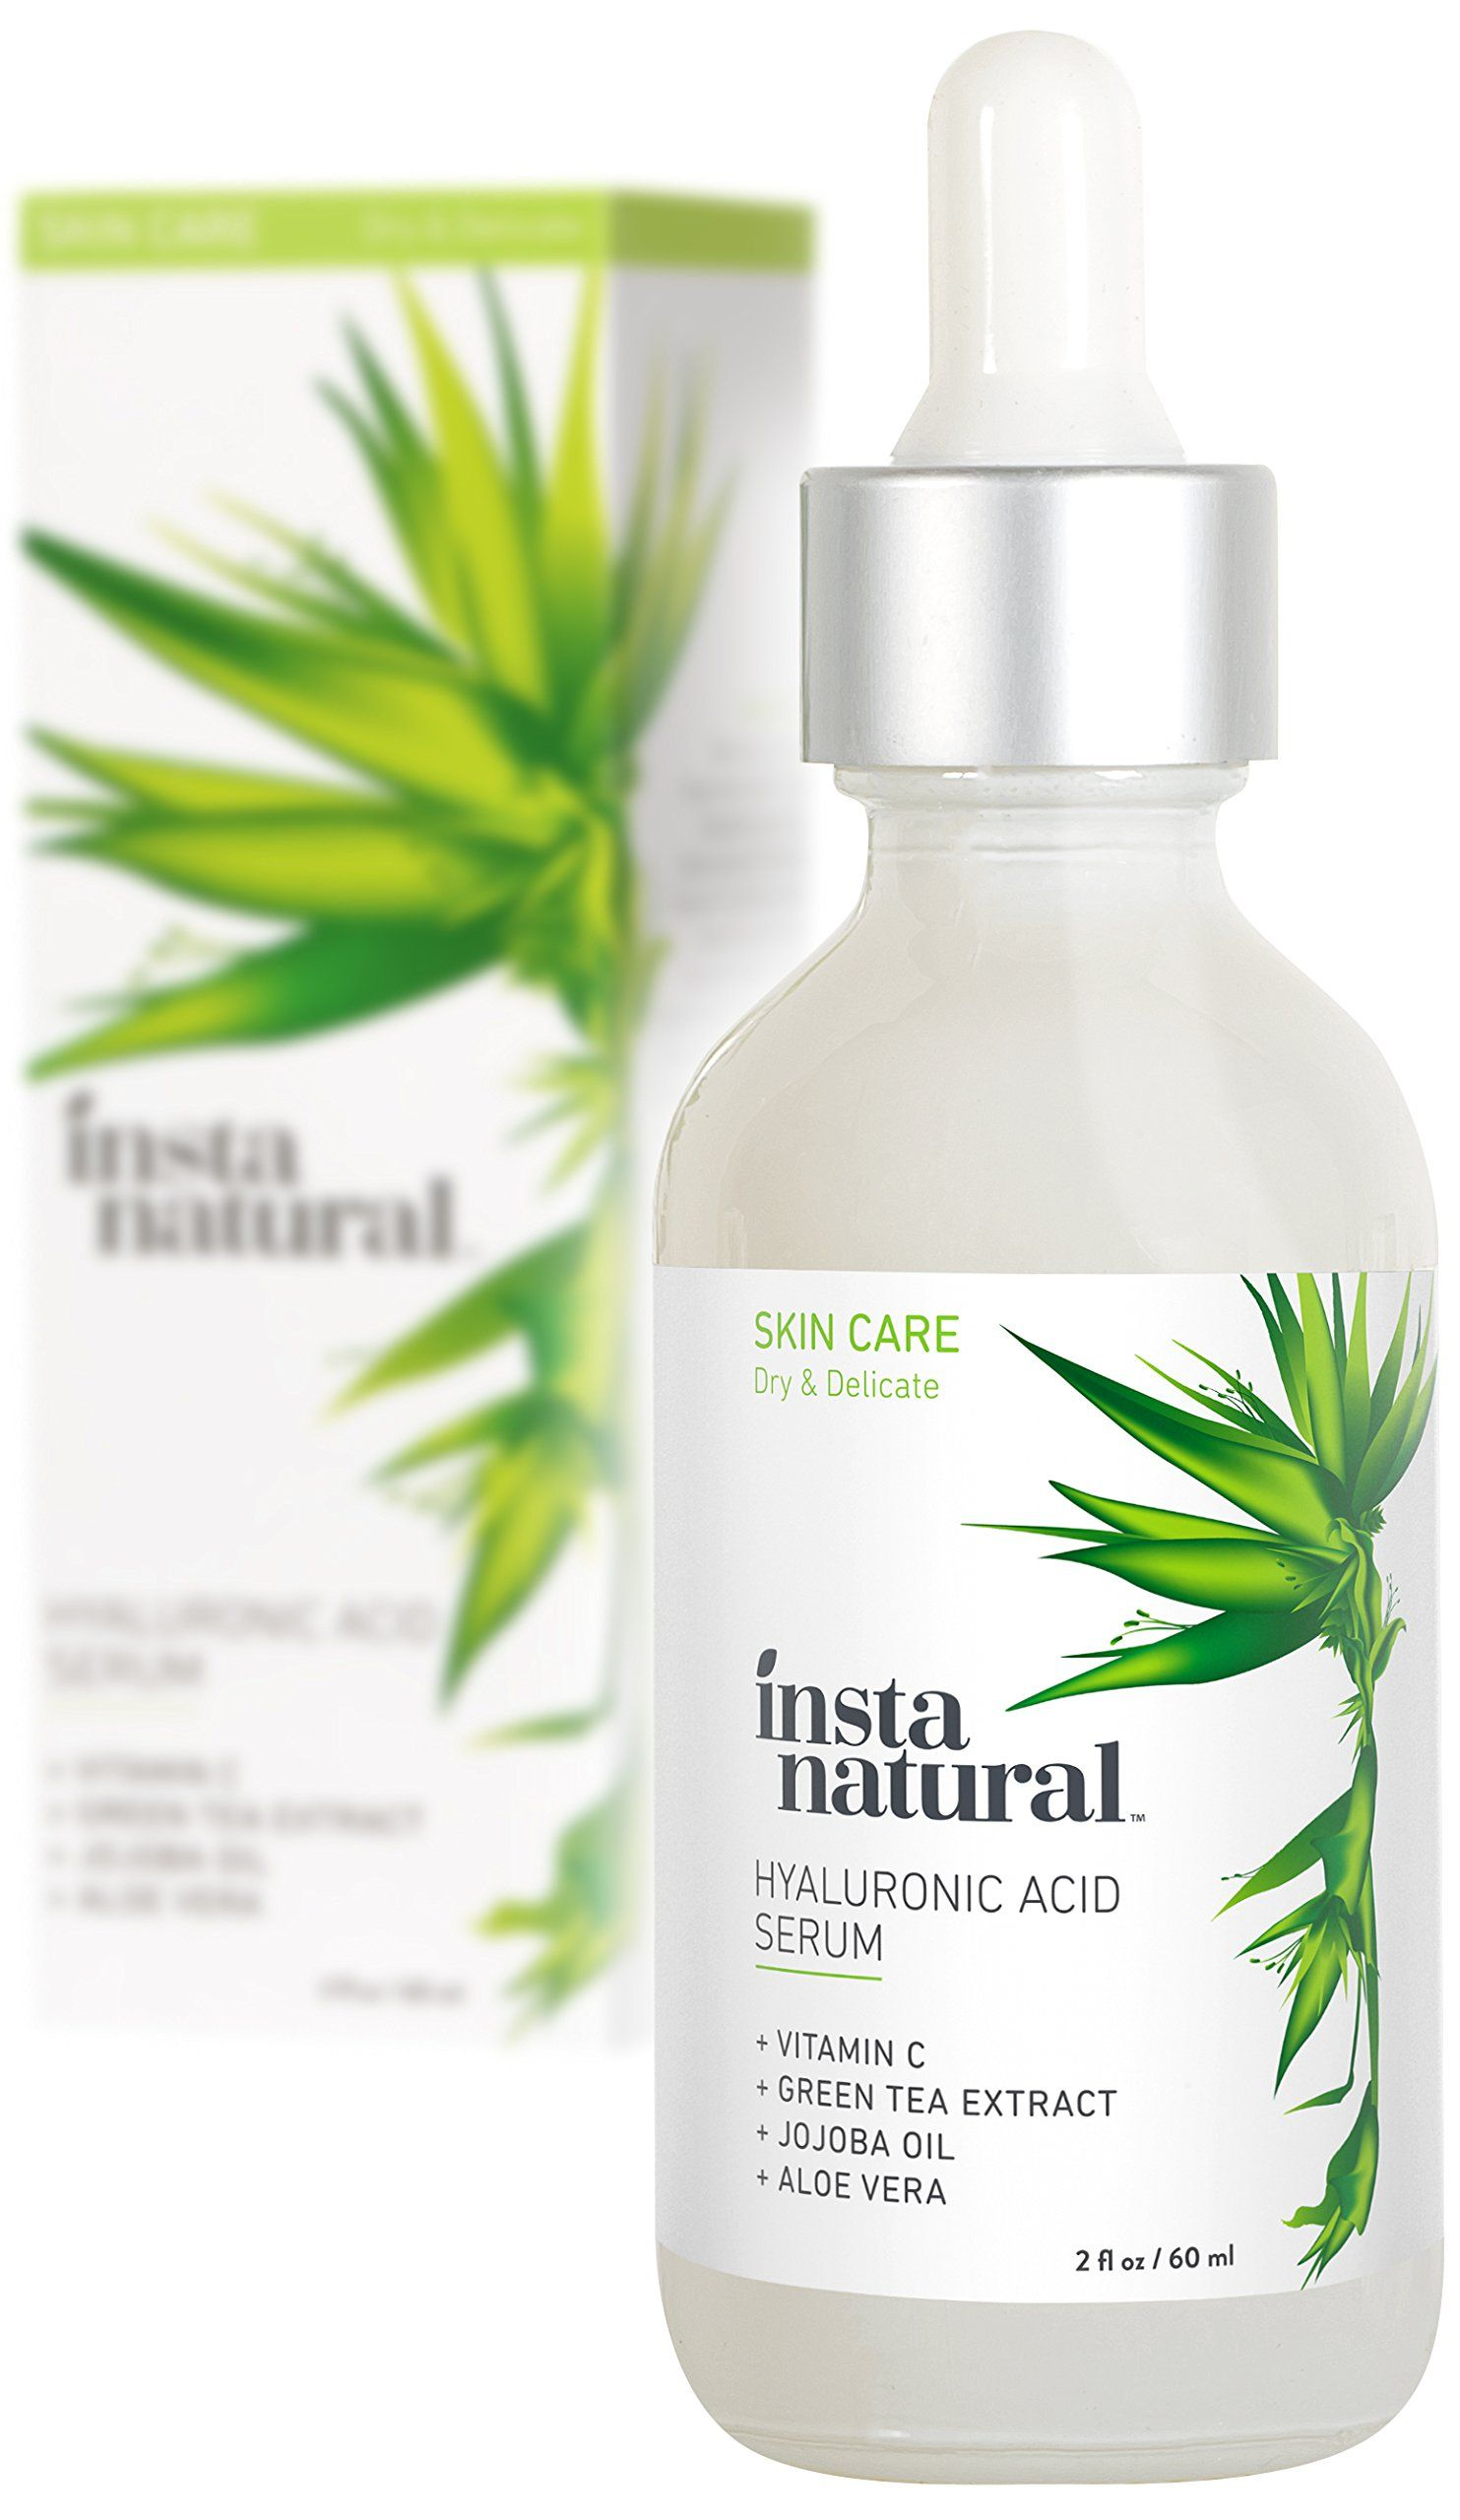 Instanatural hyaluronic acid serum anti aging serum for face